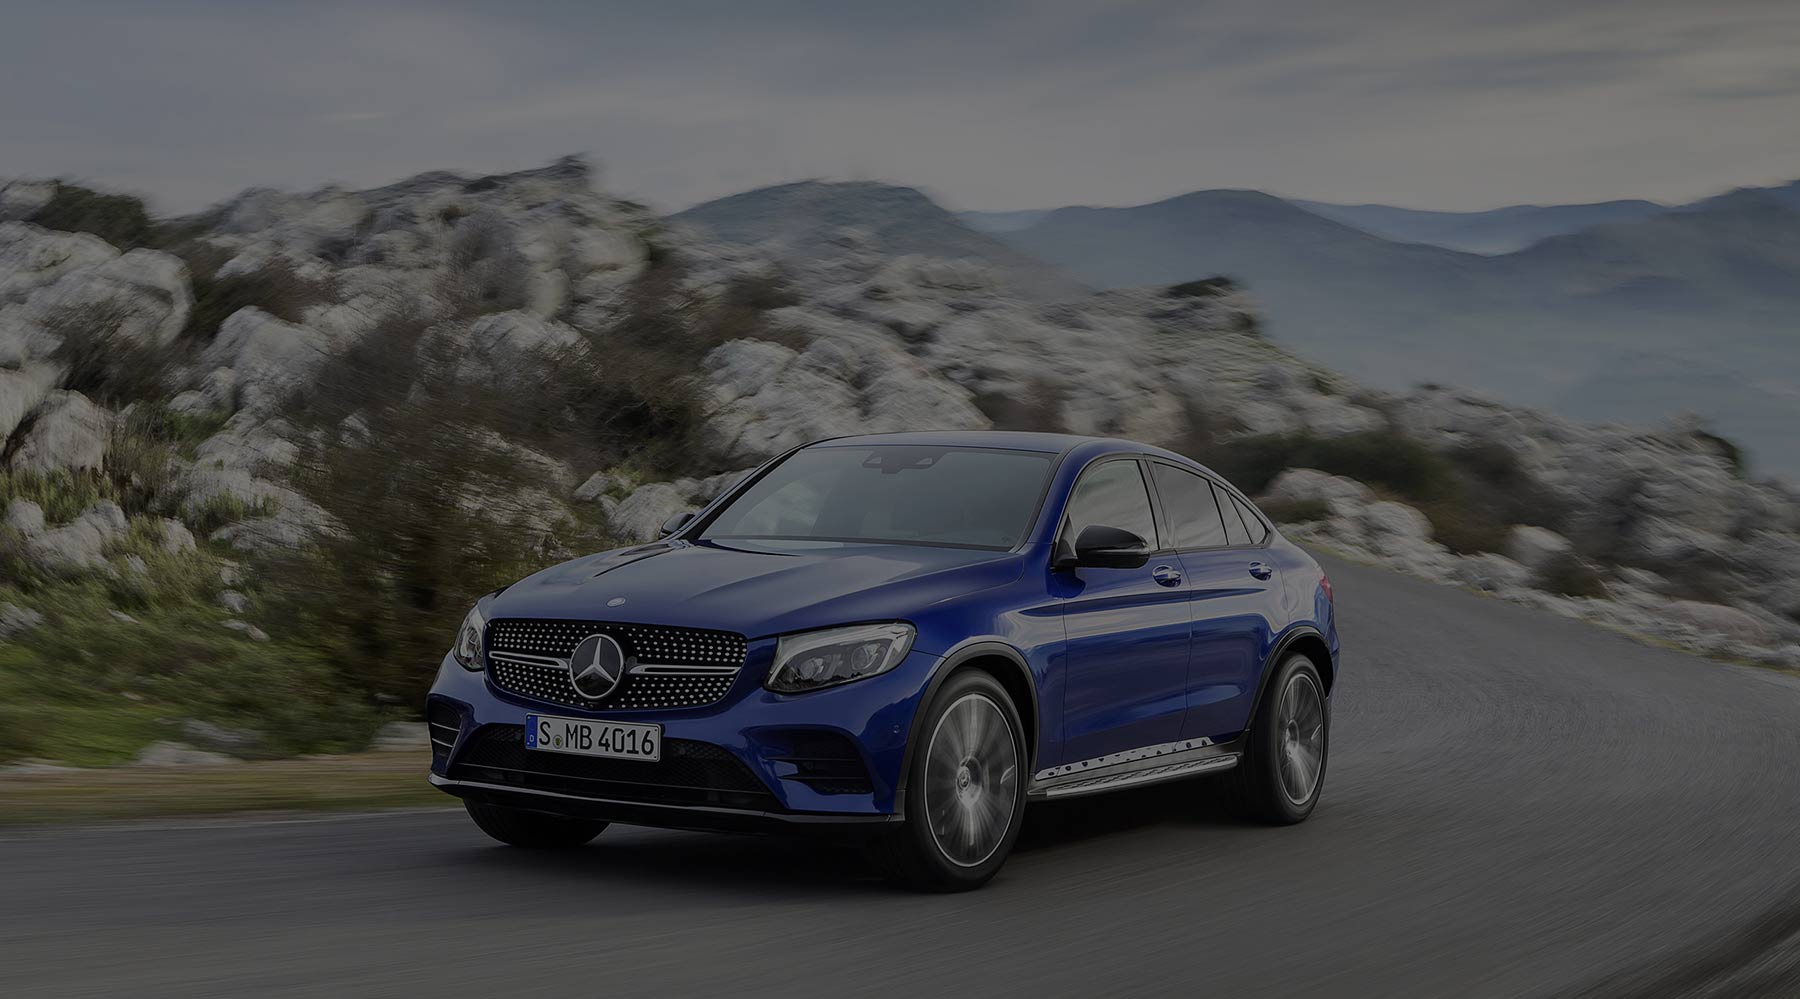 2017 glc coupe background mercedes benz of chicago 2017 glc coupe background voltagebd Image collections